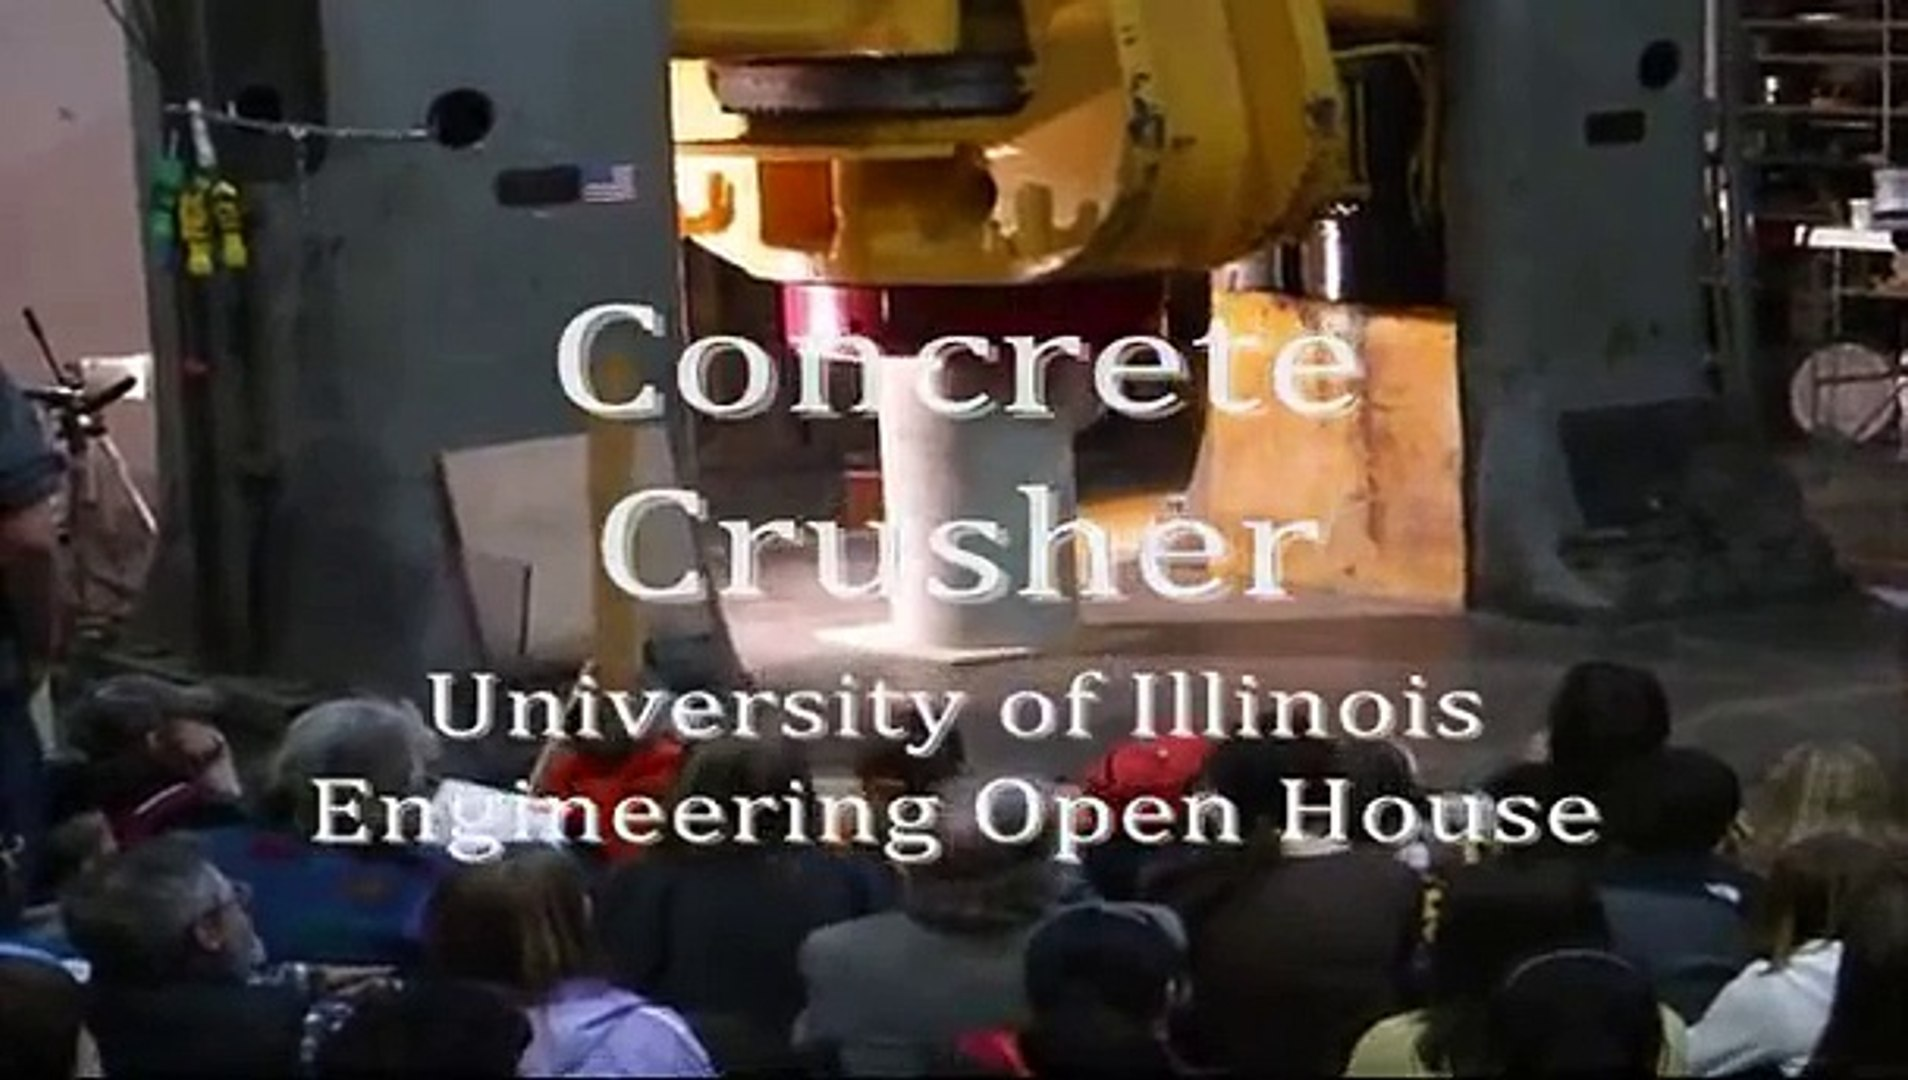 Concrete Crusher at Engineering Open House